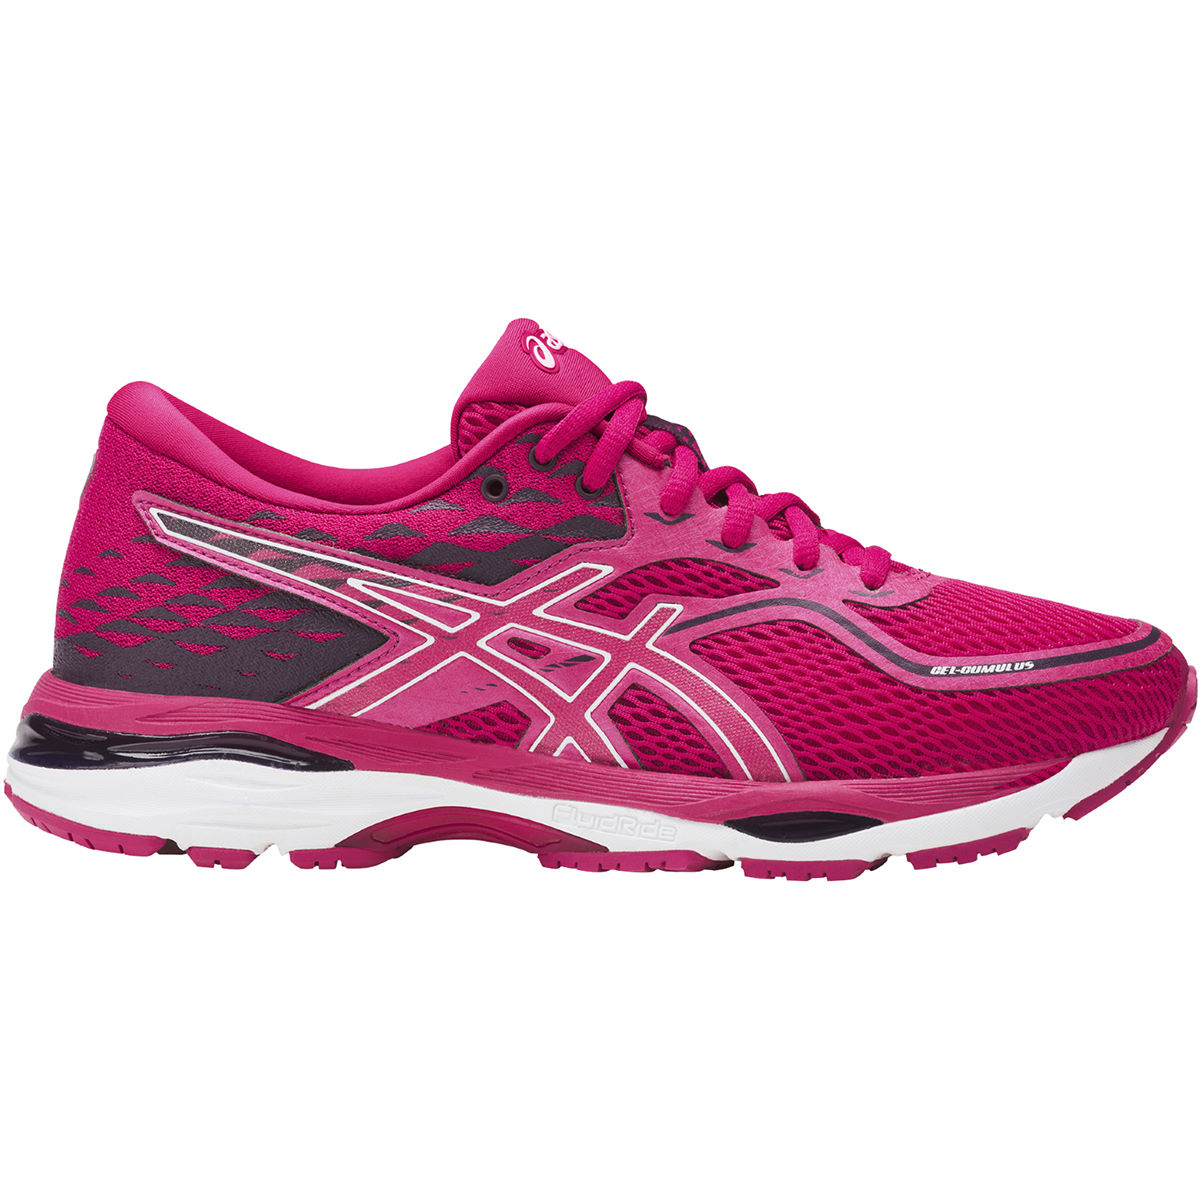 info for 5abc4 0a124 Women's Asics Gel Cumulus 19